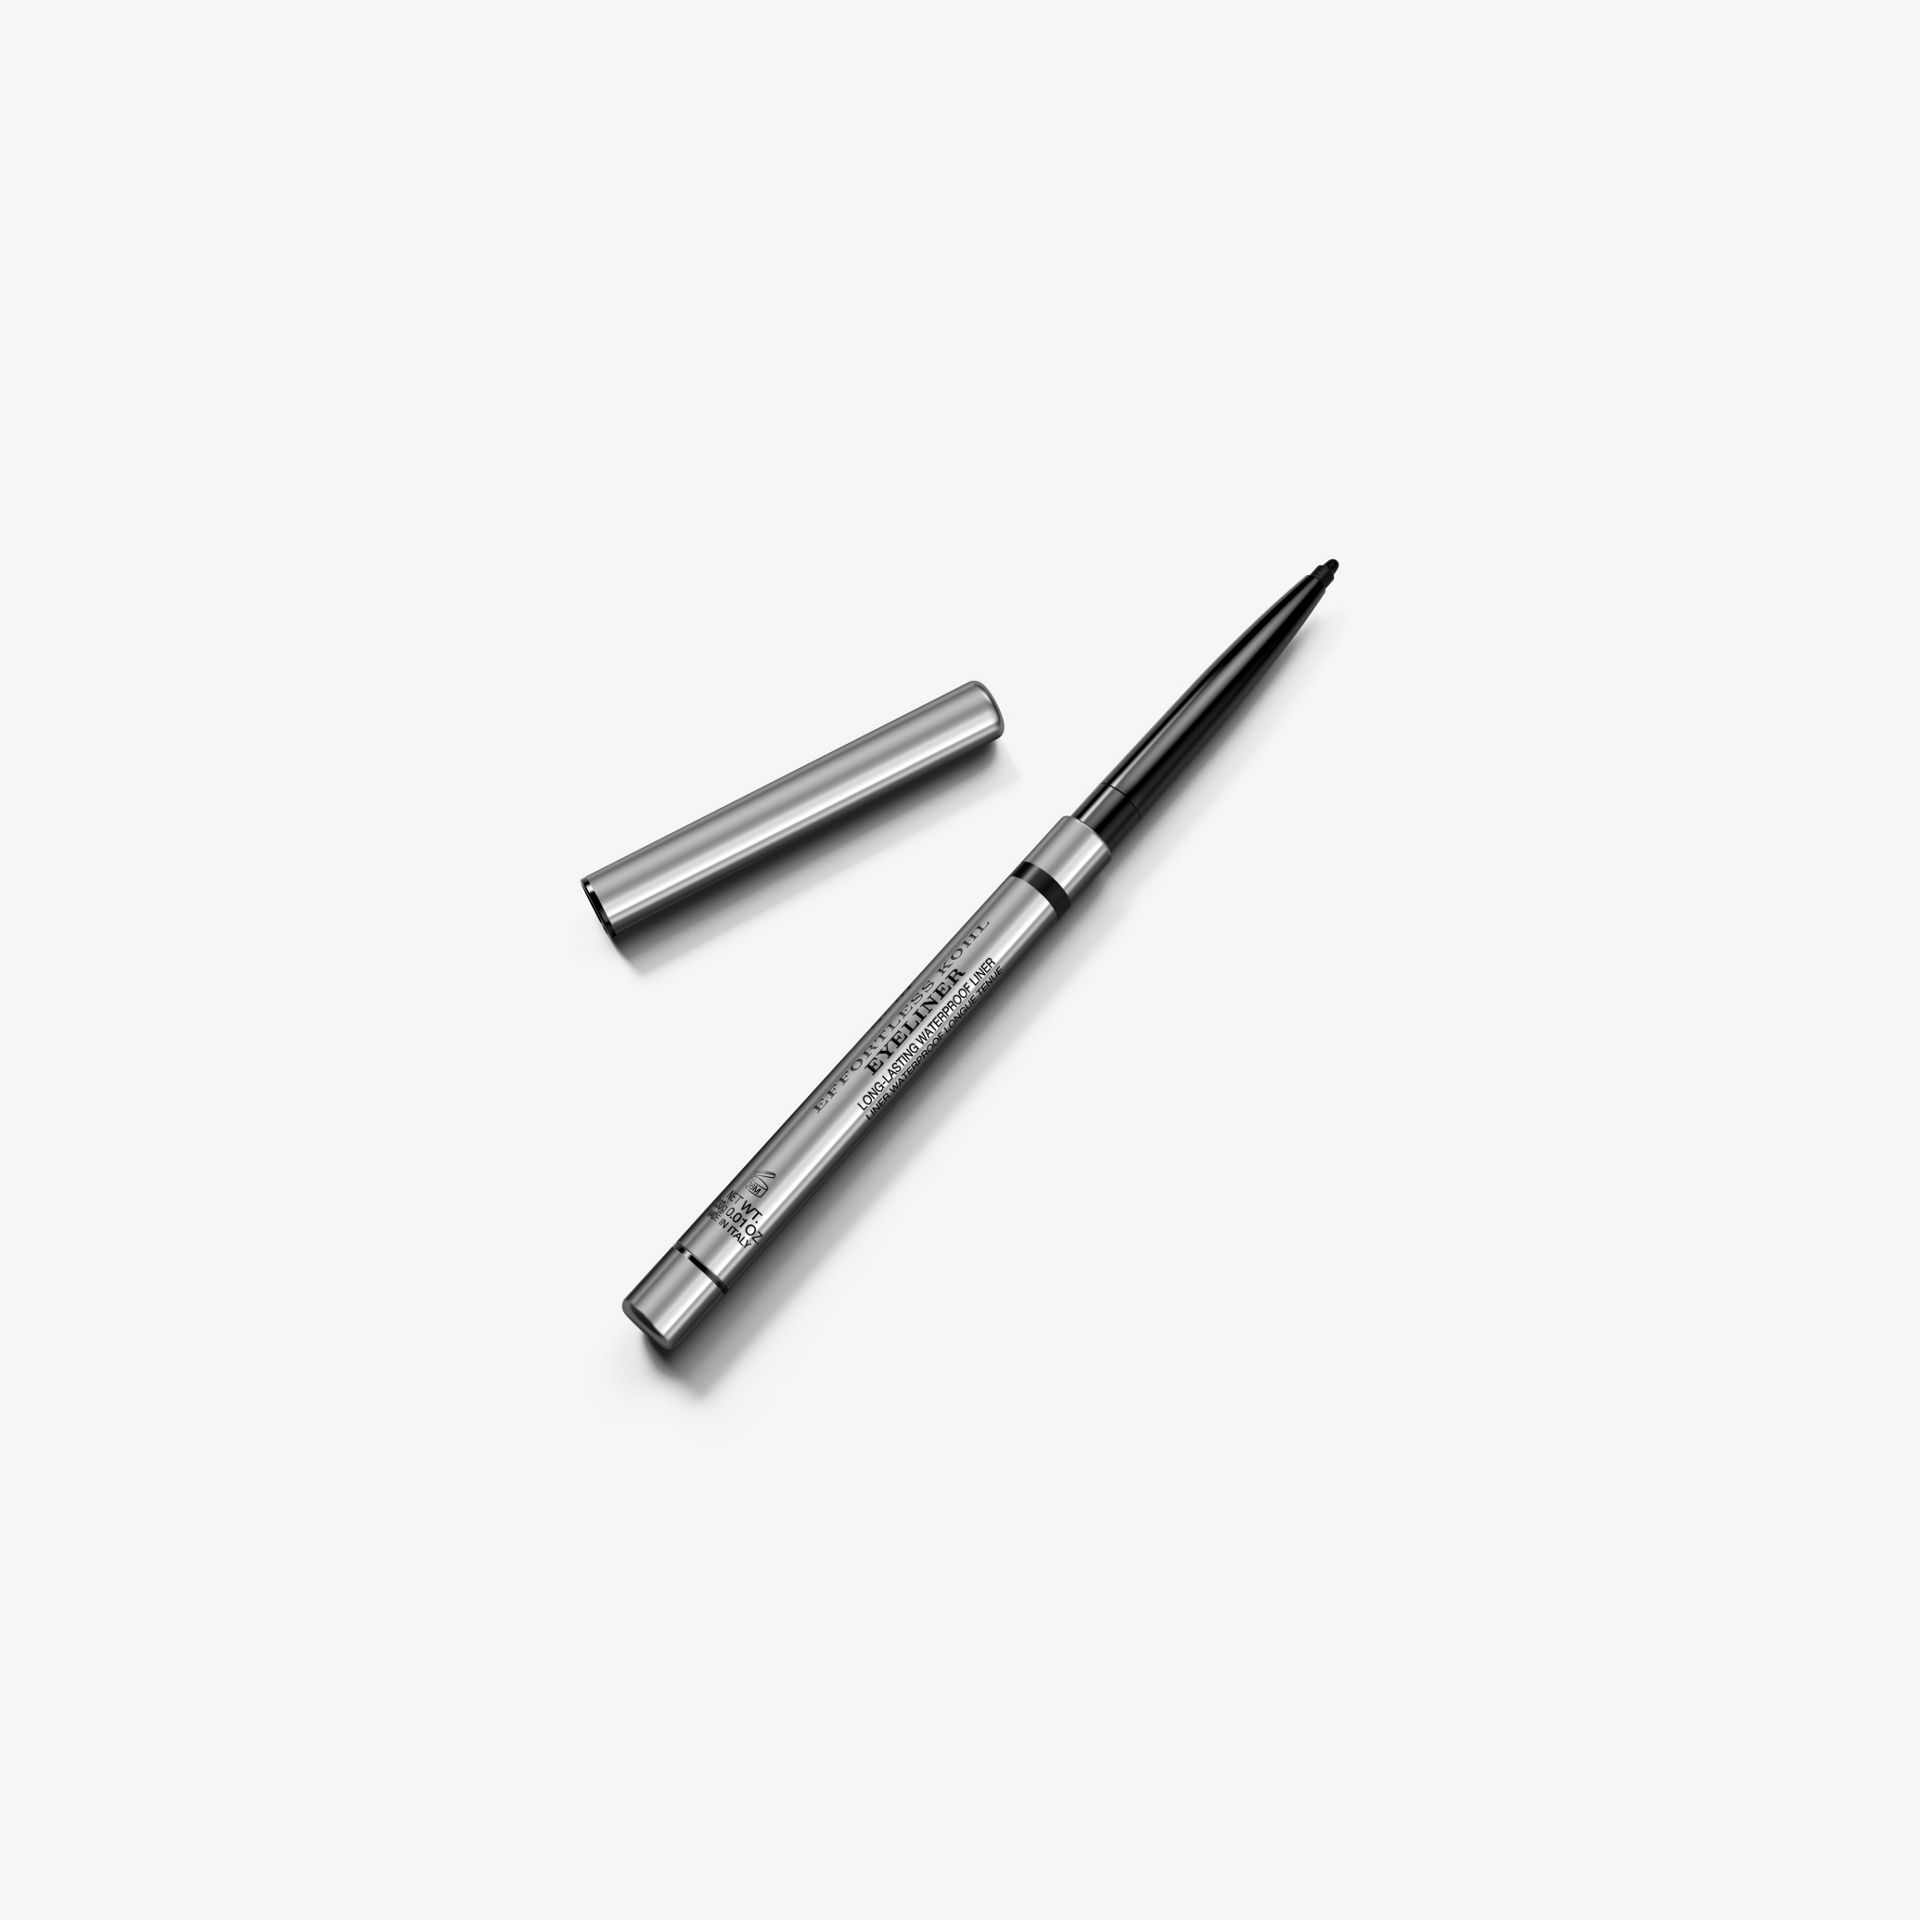 Jet black 01 Effortless Kohl Eyeliner – Jet Black No.01 - galeria de imagens 1